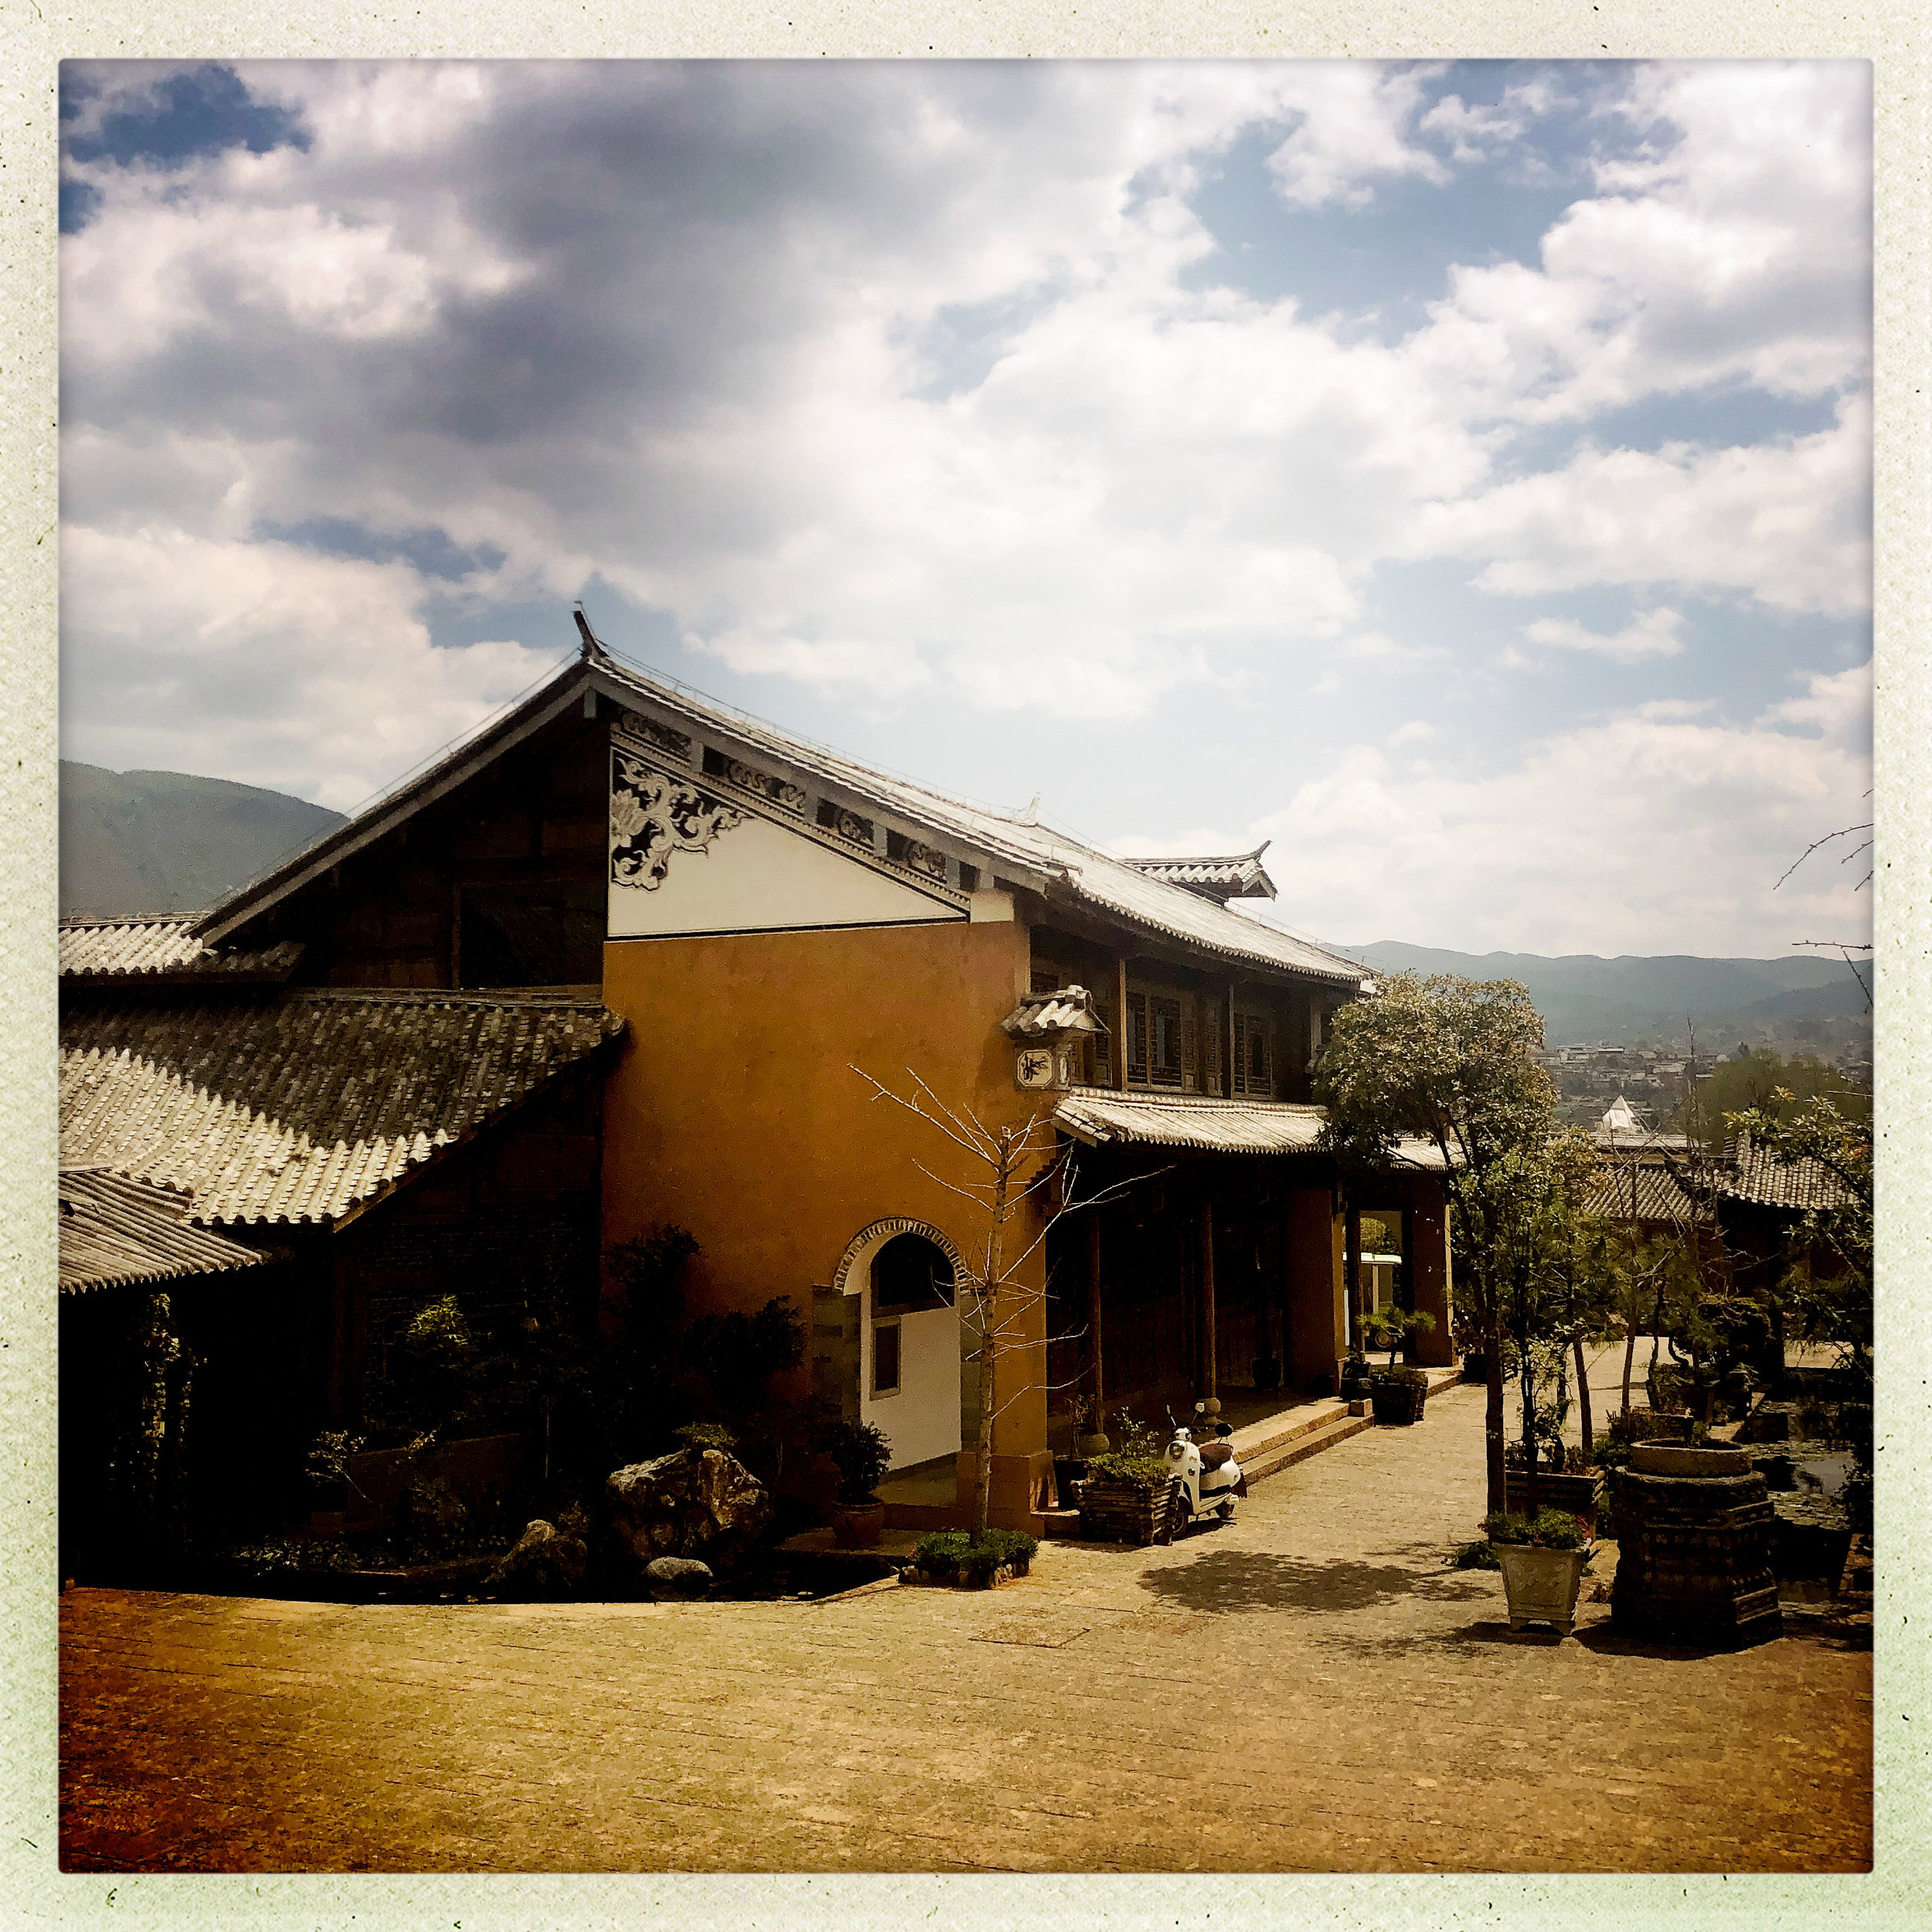 The Landscape Hotel in the heart of Shaxi